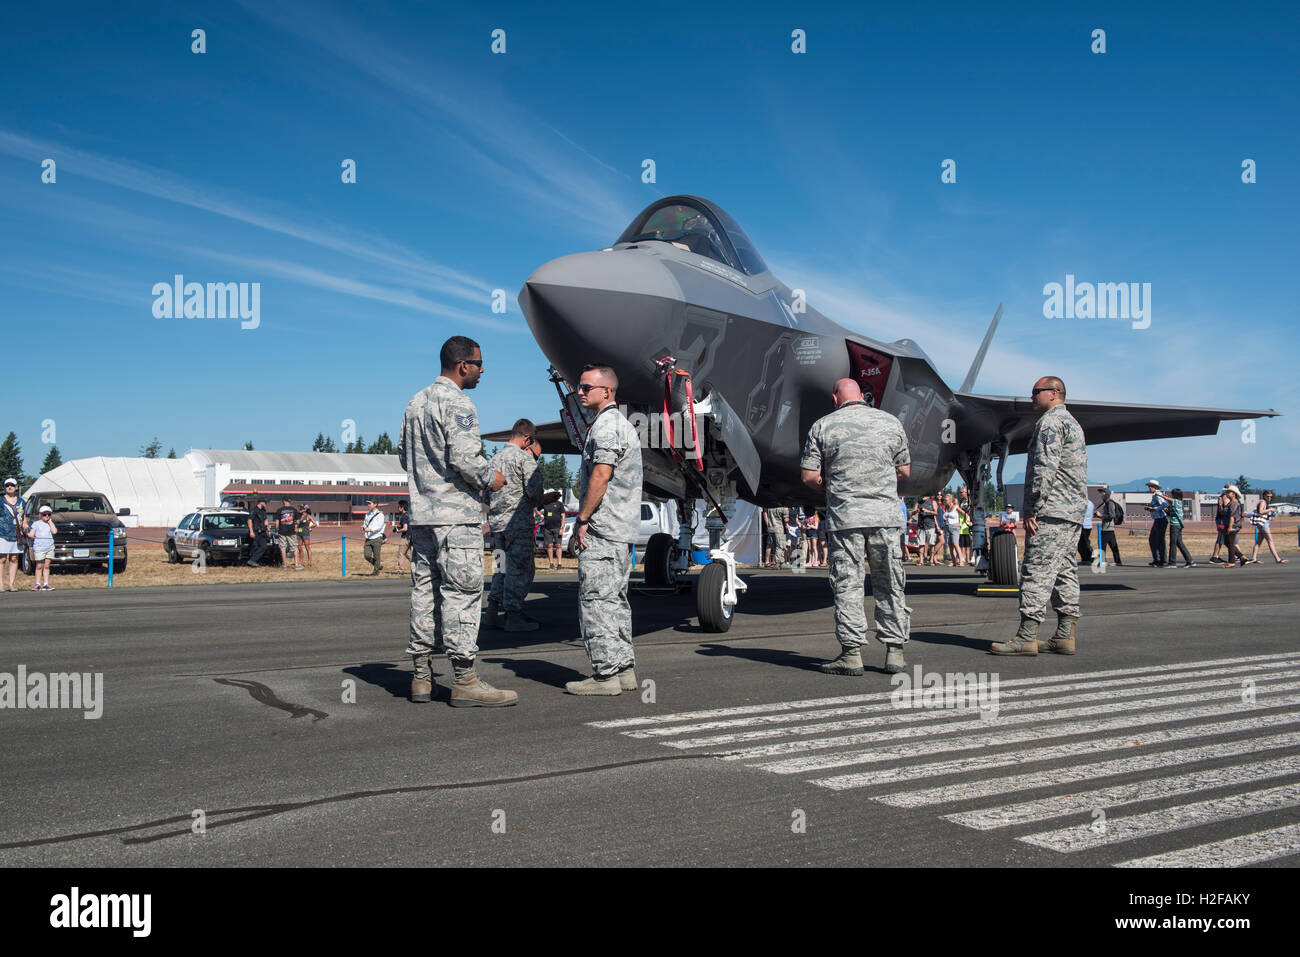 US Airmen guard the Stealth F-35A fighter jet, at the Abbotsford airshow, British Columbia. - Stock Image